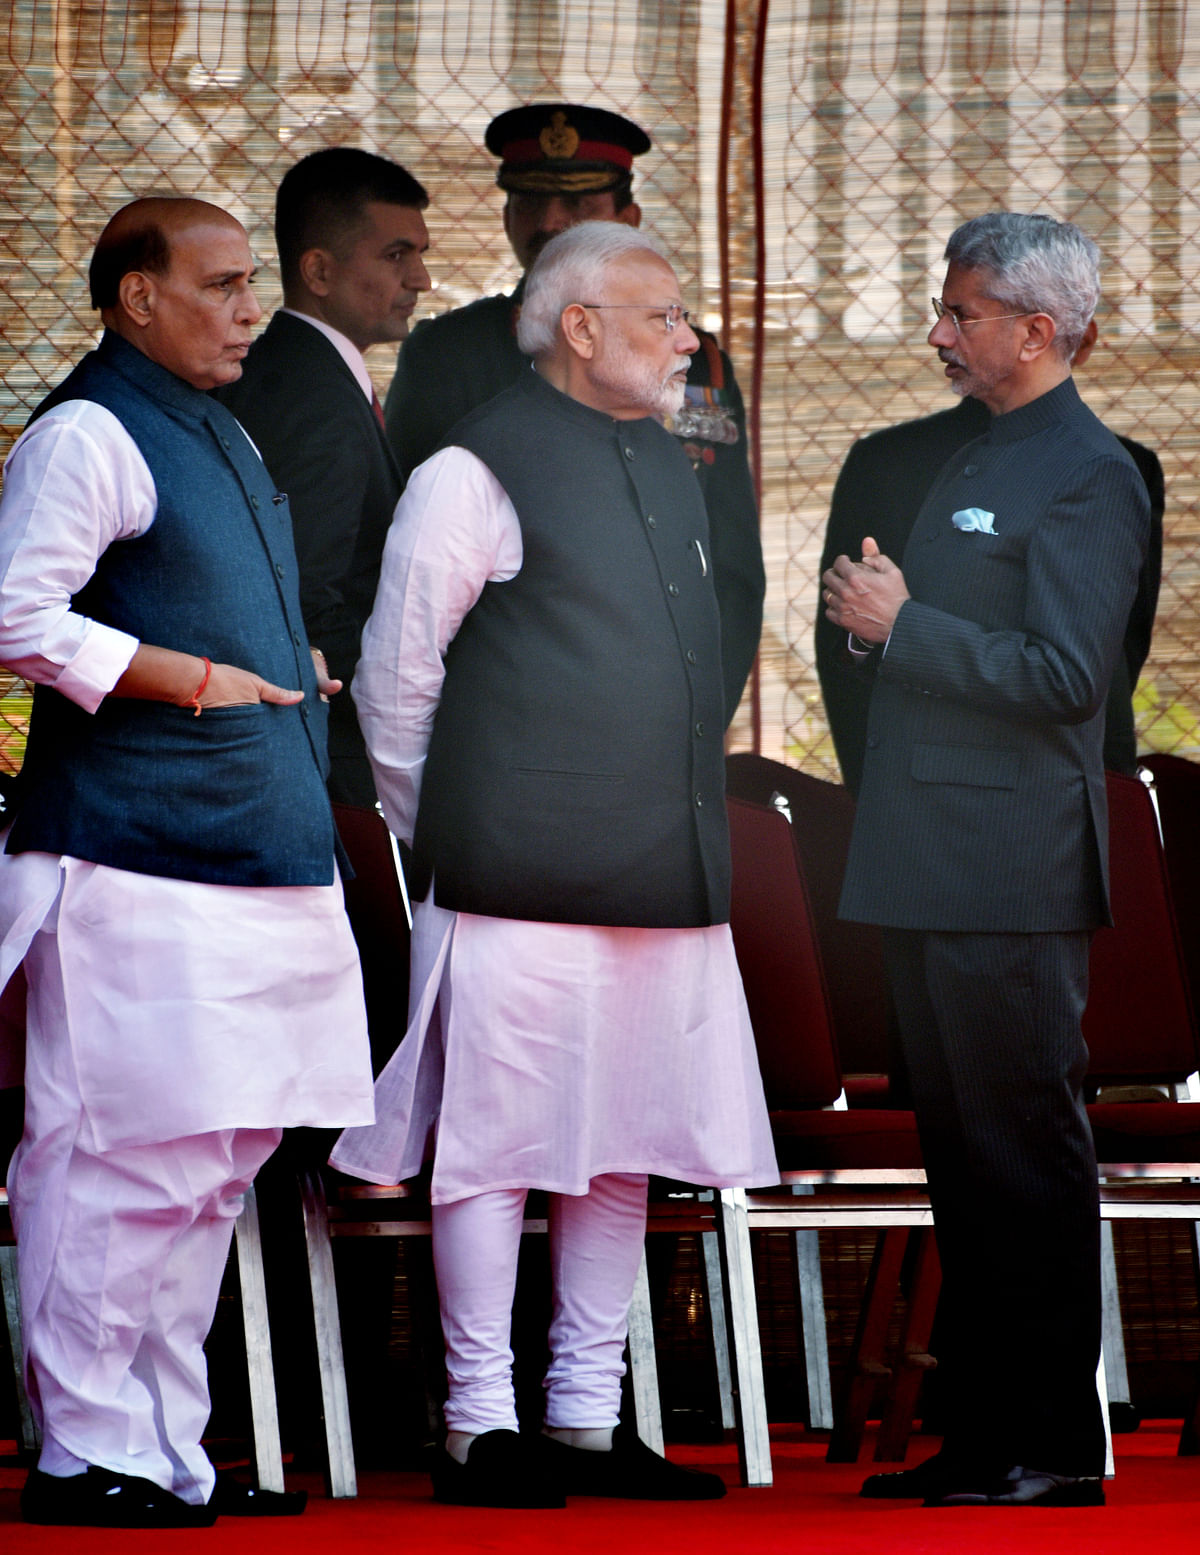 Prime Minister Narendra Modi, Defence Minister Rajnath Singh and Foreign Minister S Jaishankar together. The latter has dismissed any hopes of doing business with China till the tension on the borders cool down. Clearly suggesting that India is ready to dig in for the long haul with China.